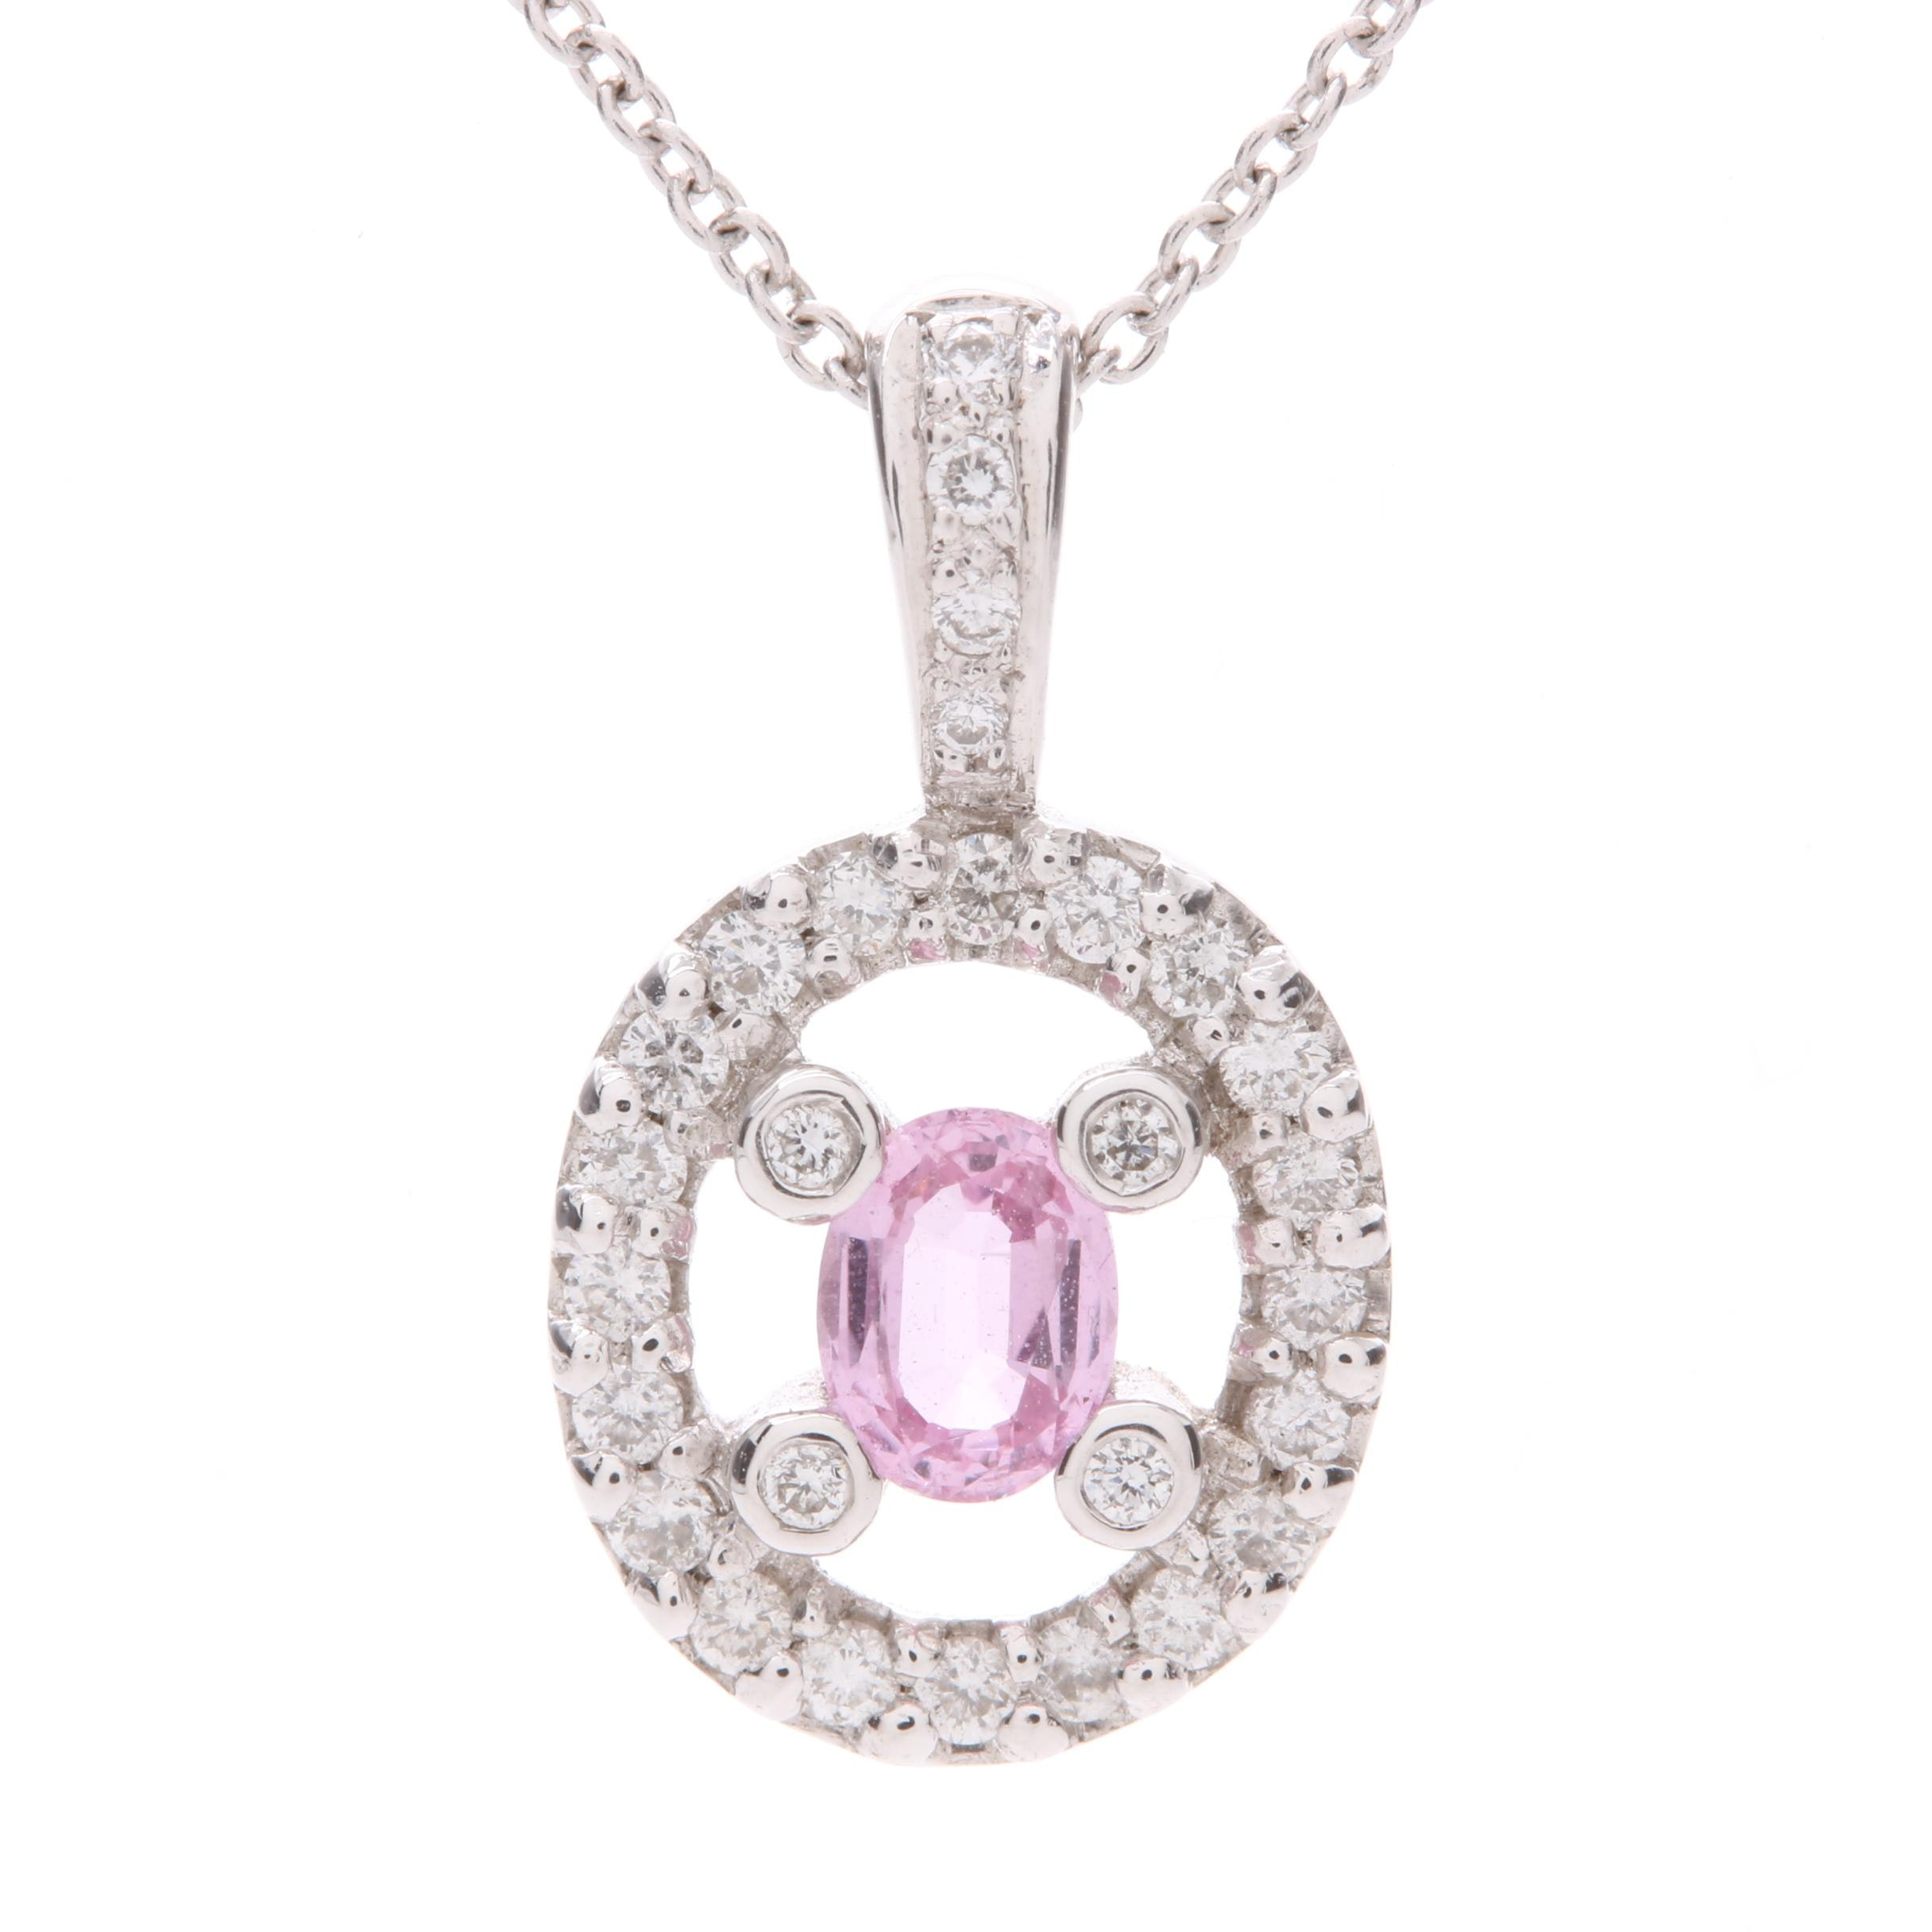 14K White Gold Pink Sapphire and Diamond Pendant Necklace